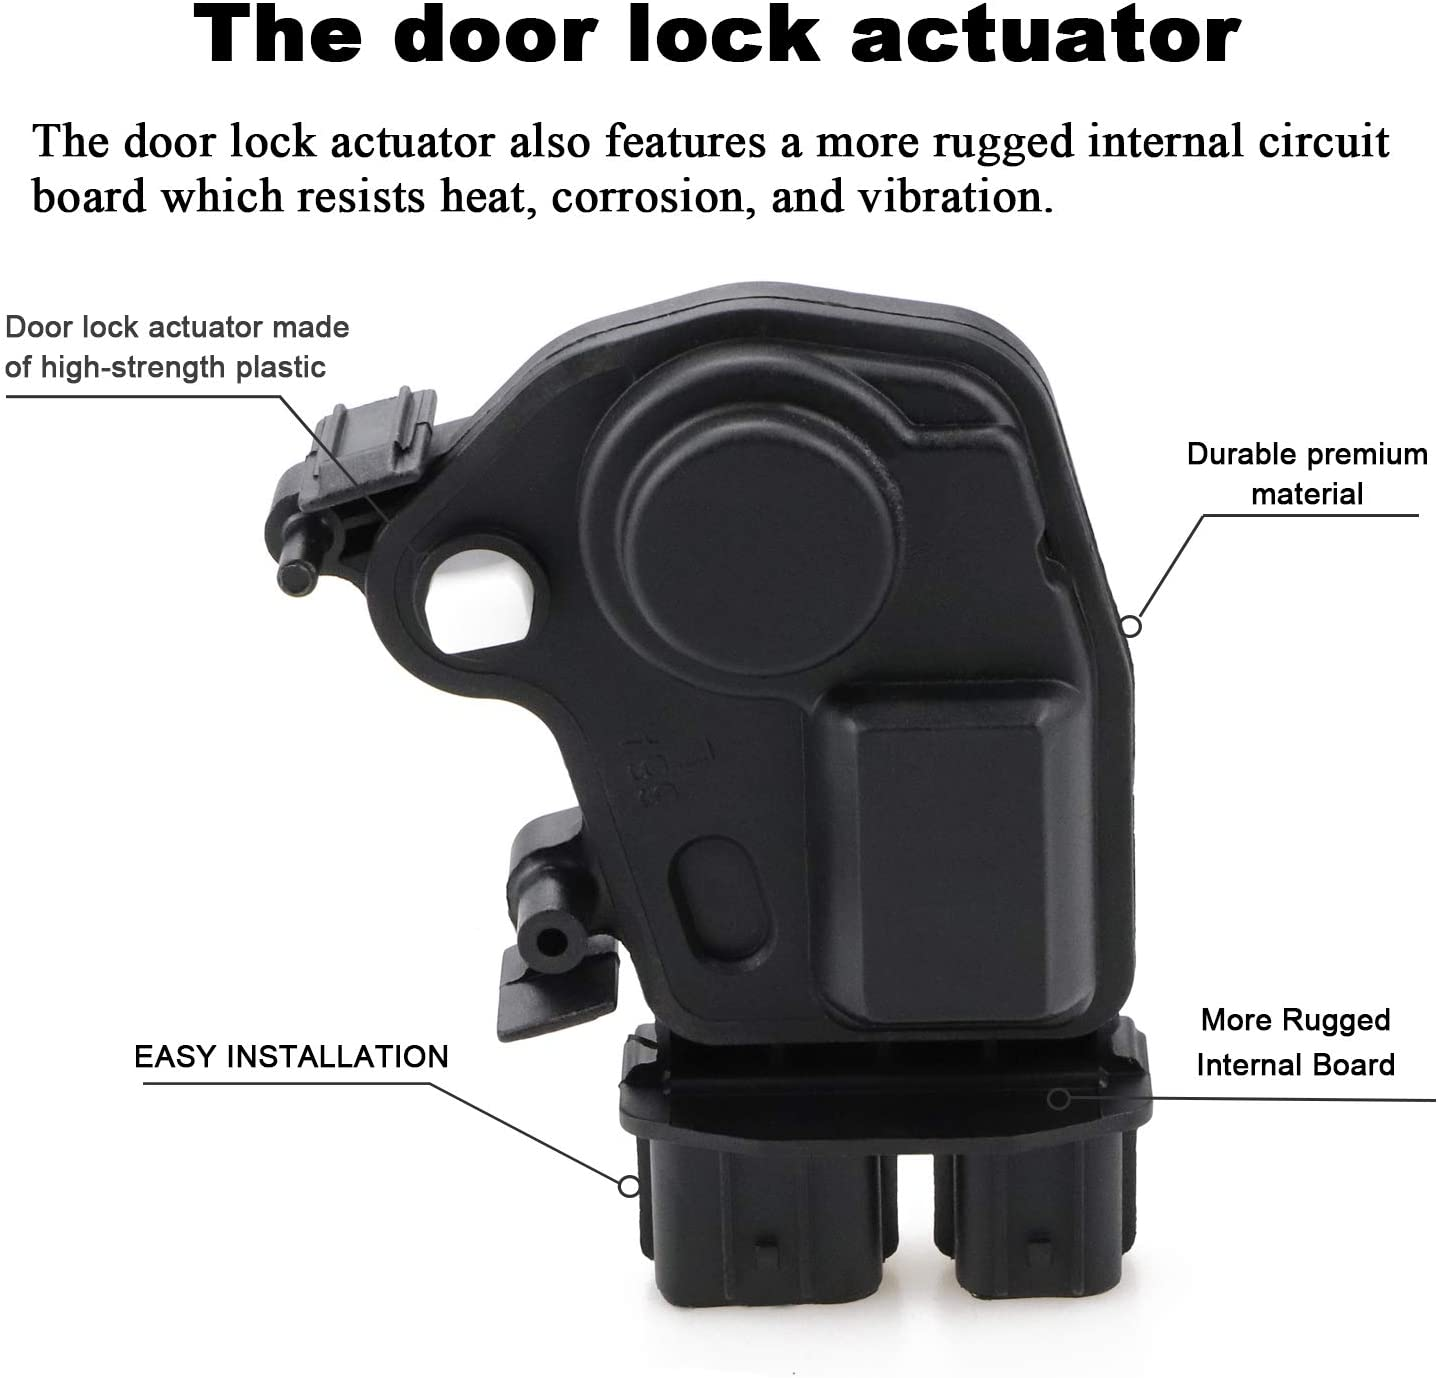 Door Lock Actuator Motor Front Left for 2003 2004 2005 Honda Accord Civic CR-V Element Odyssey Pilot 2002-2006 Acura RSX Replaces 72155-S5P-A11 72155S5PA11